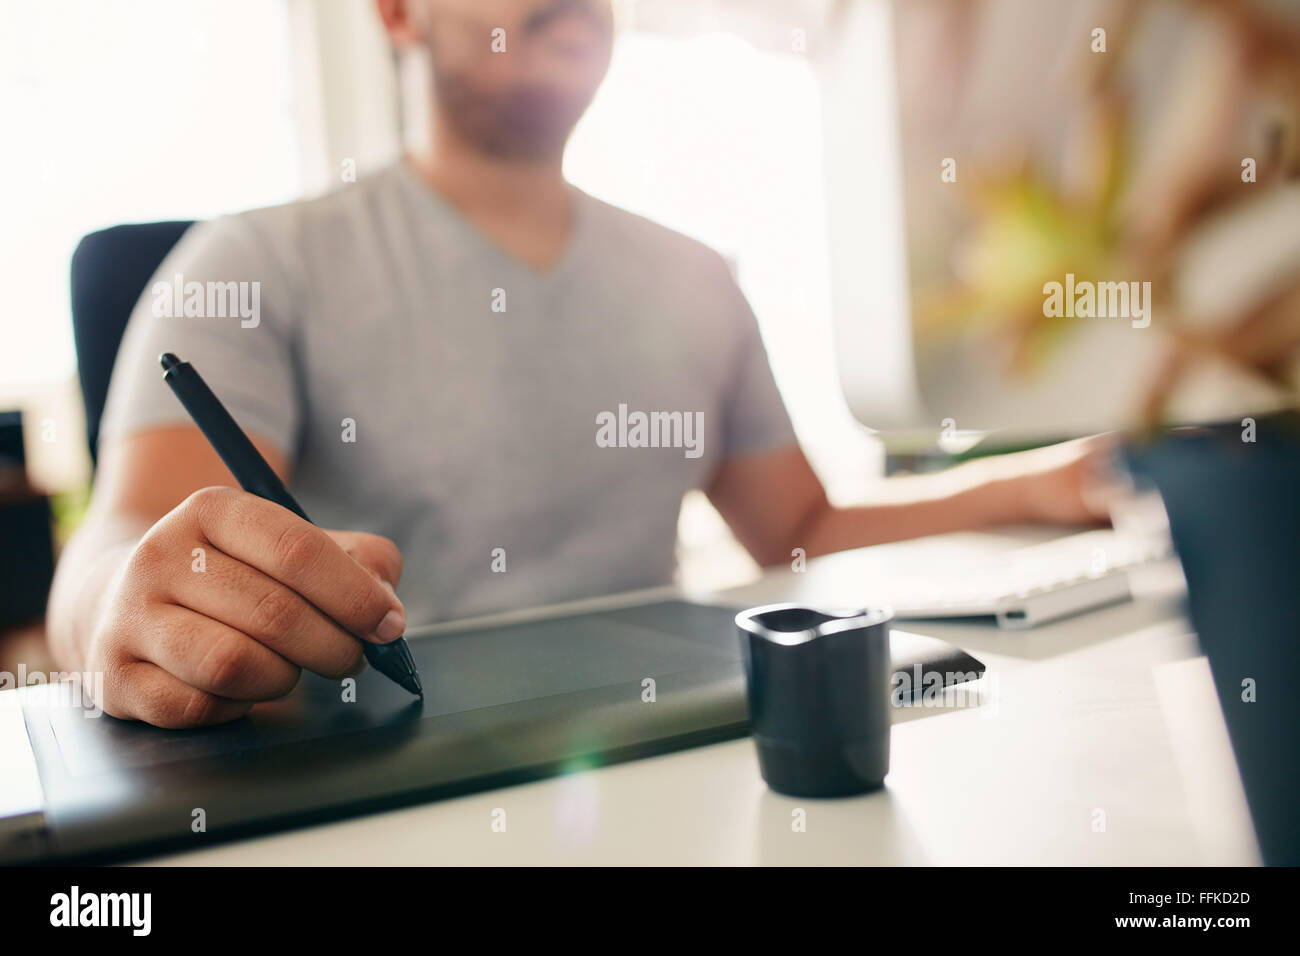 Hand of male designer working at his desk using stylus and digital graphics tablet. - Stock Image